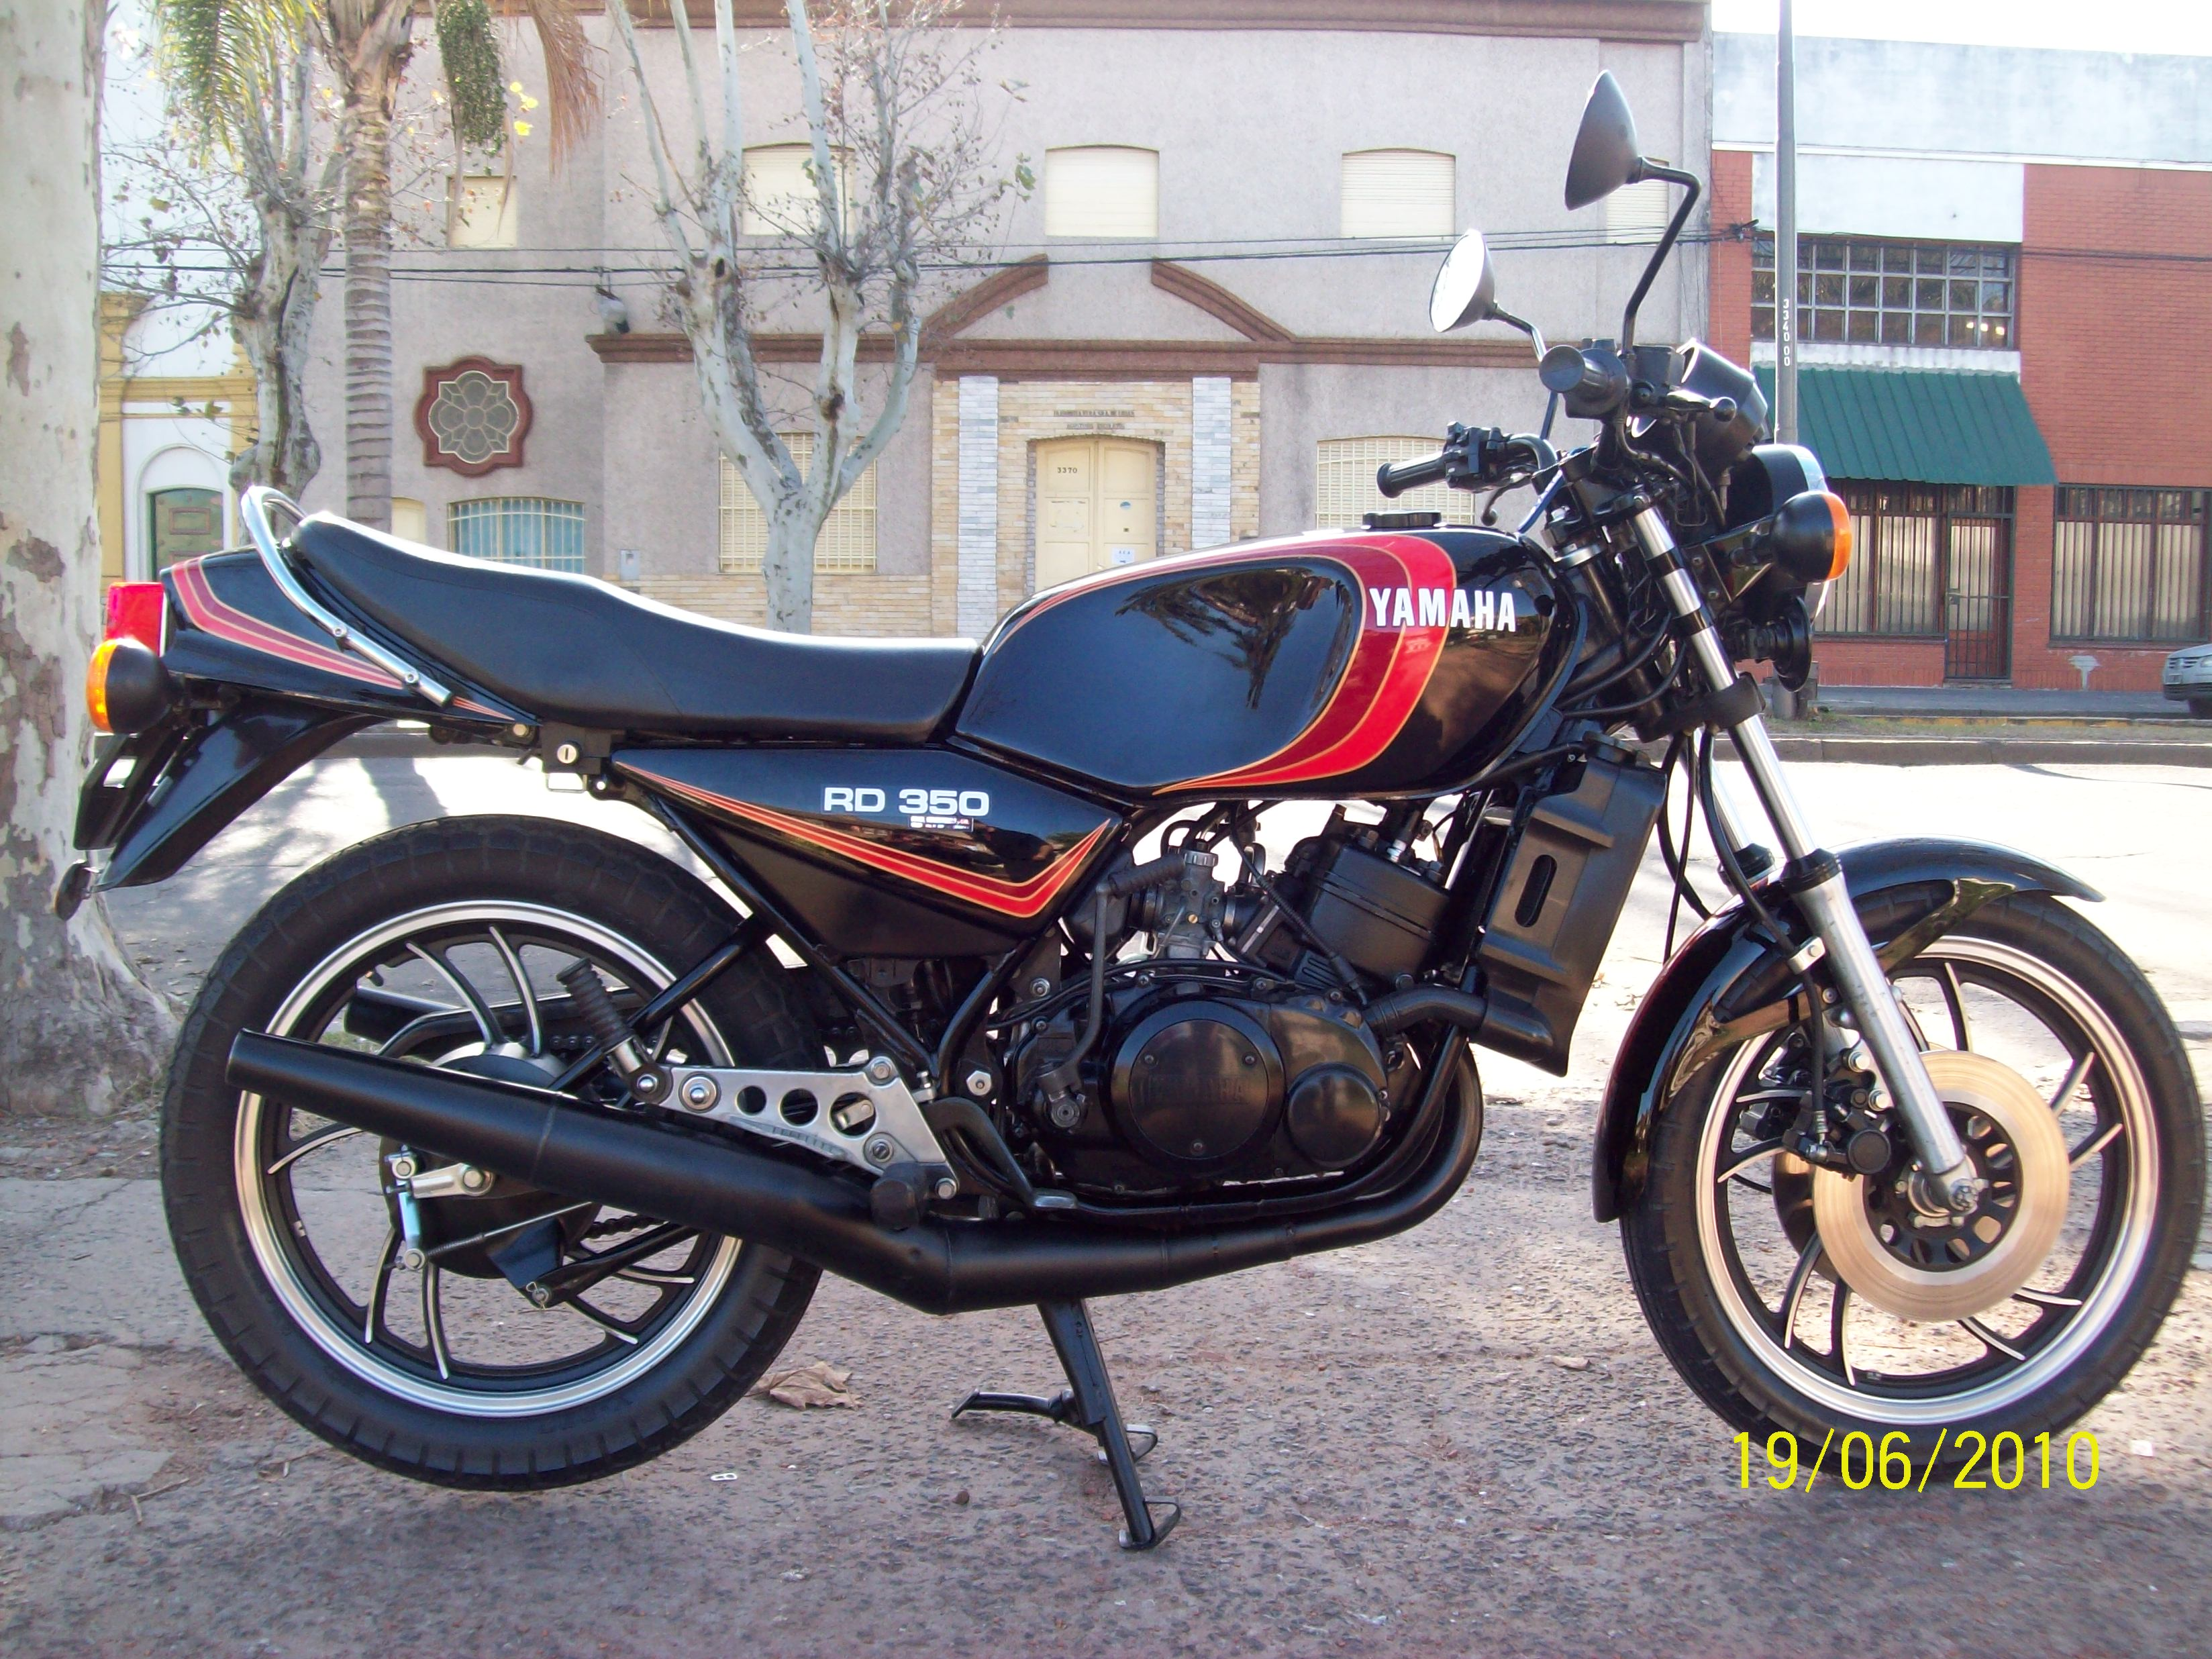 1981 Yamaha RD 350 Photos, Informations, Articles - Bikes BestCarMag com